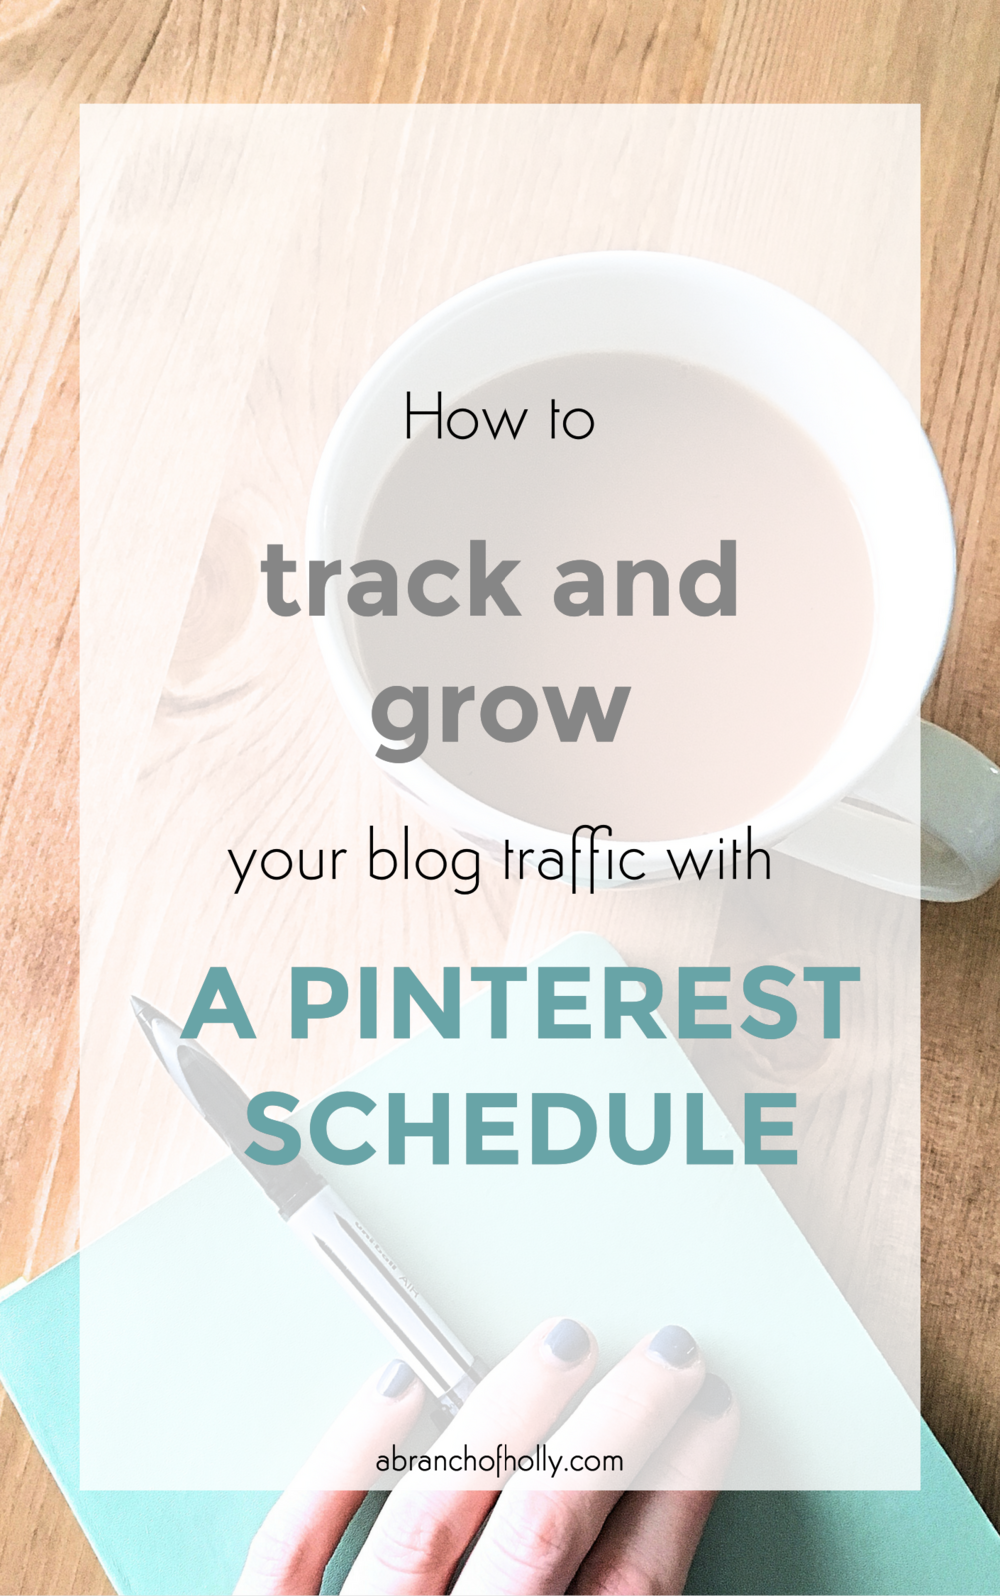 track and grow your blog traffic with pinterest